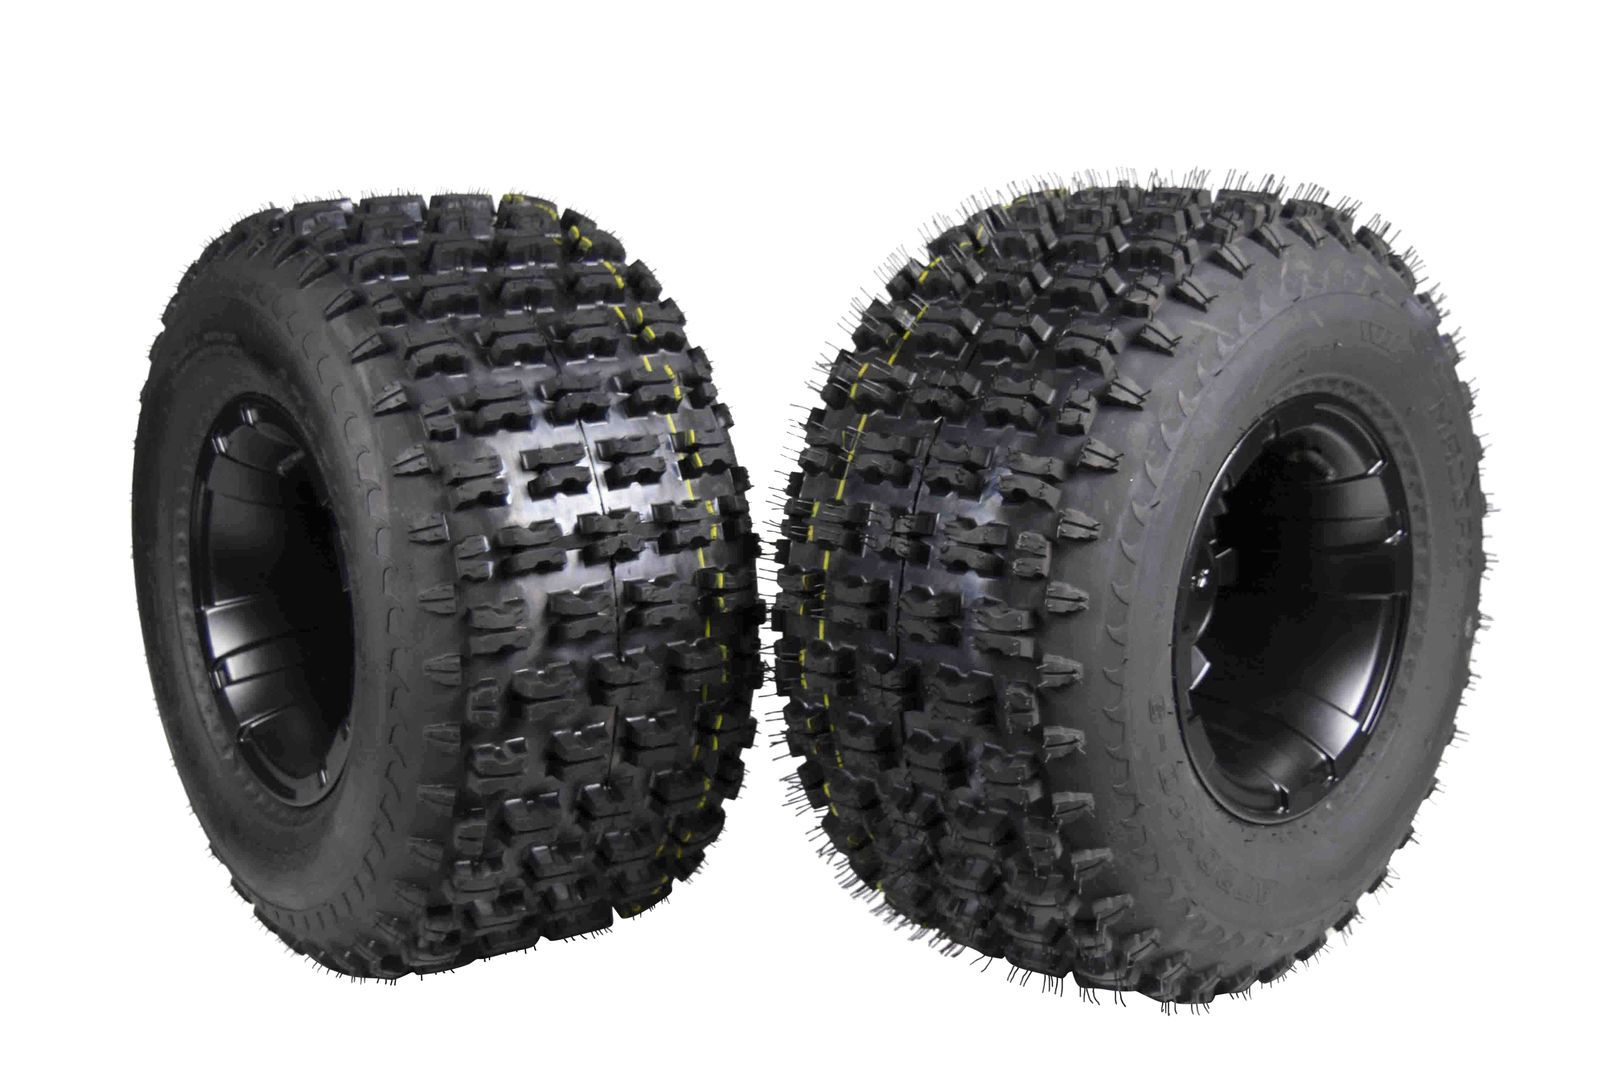 MASSFX-20-Rear-Tire-with-Black-9-Rear-Rim-20x10-9-Tire-9x8-4-115-Wheel-2-PACK-image-1